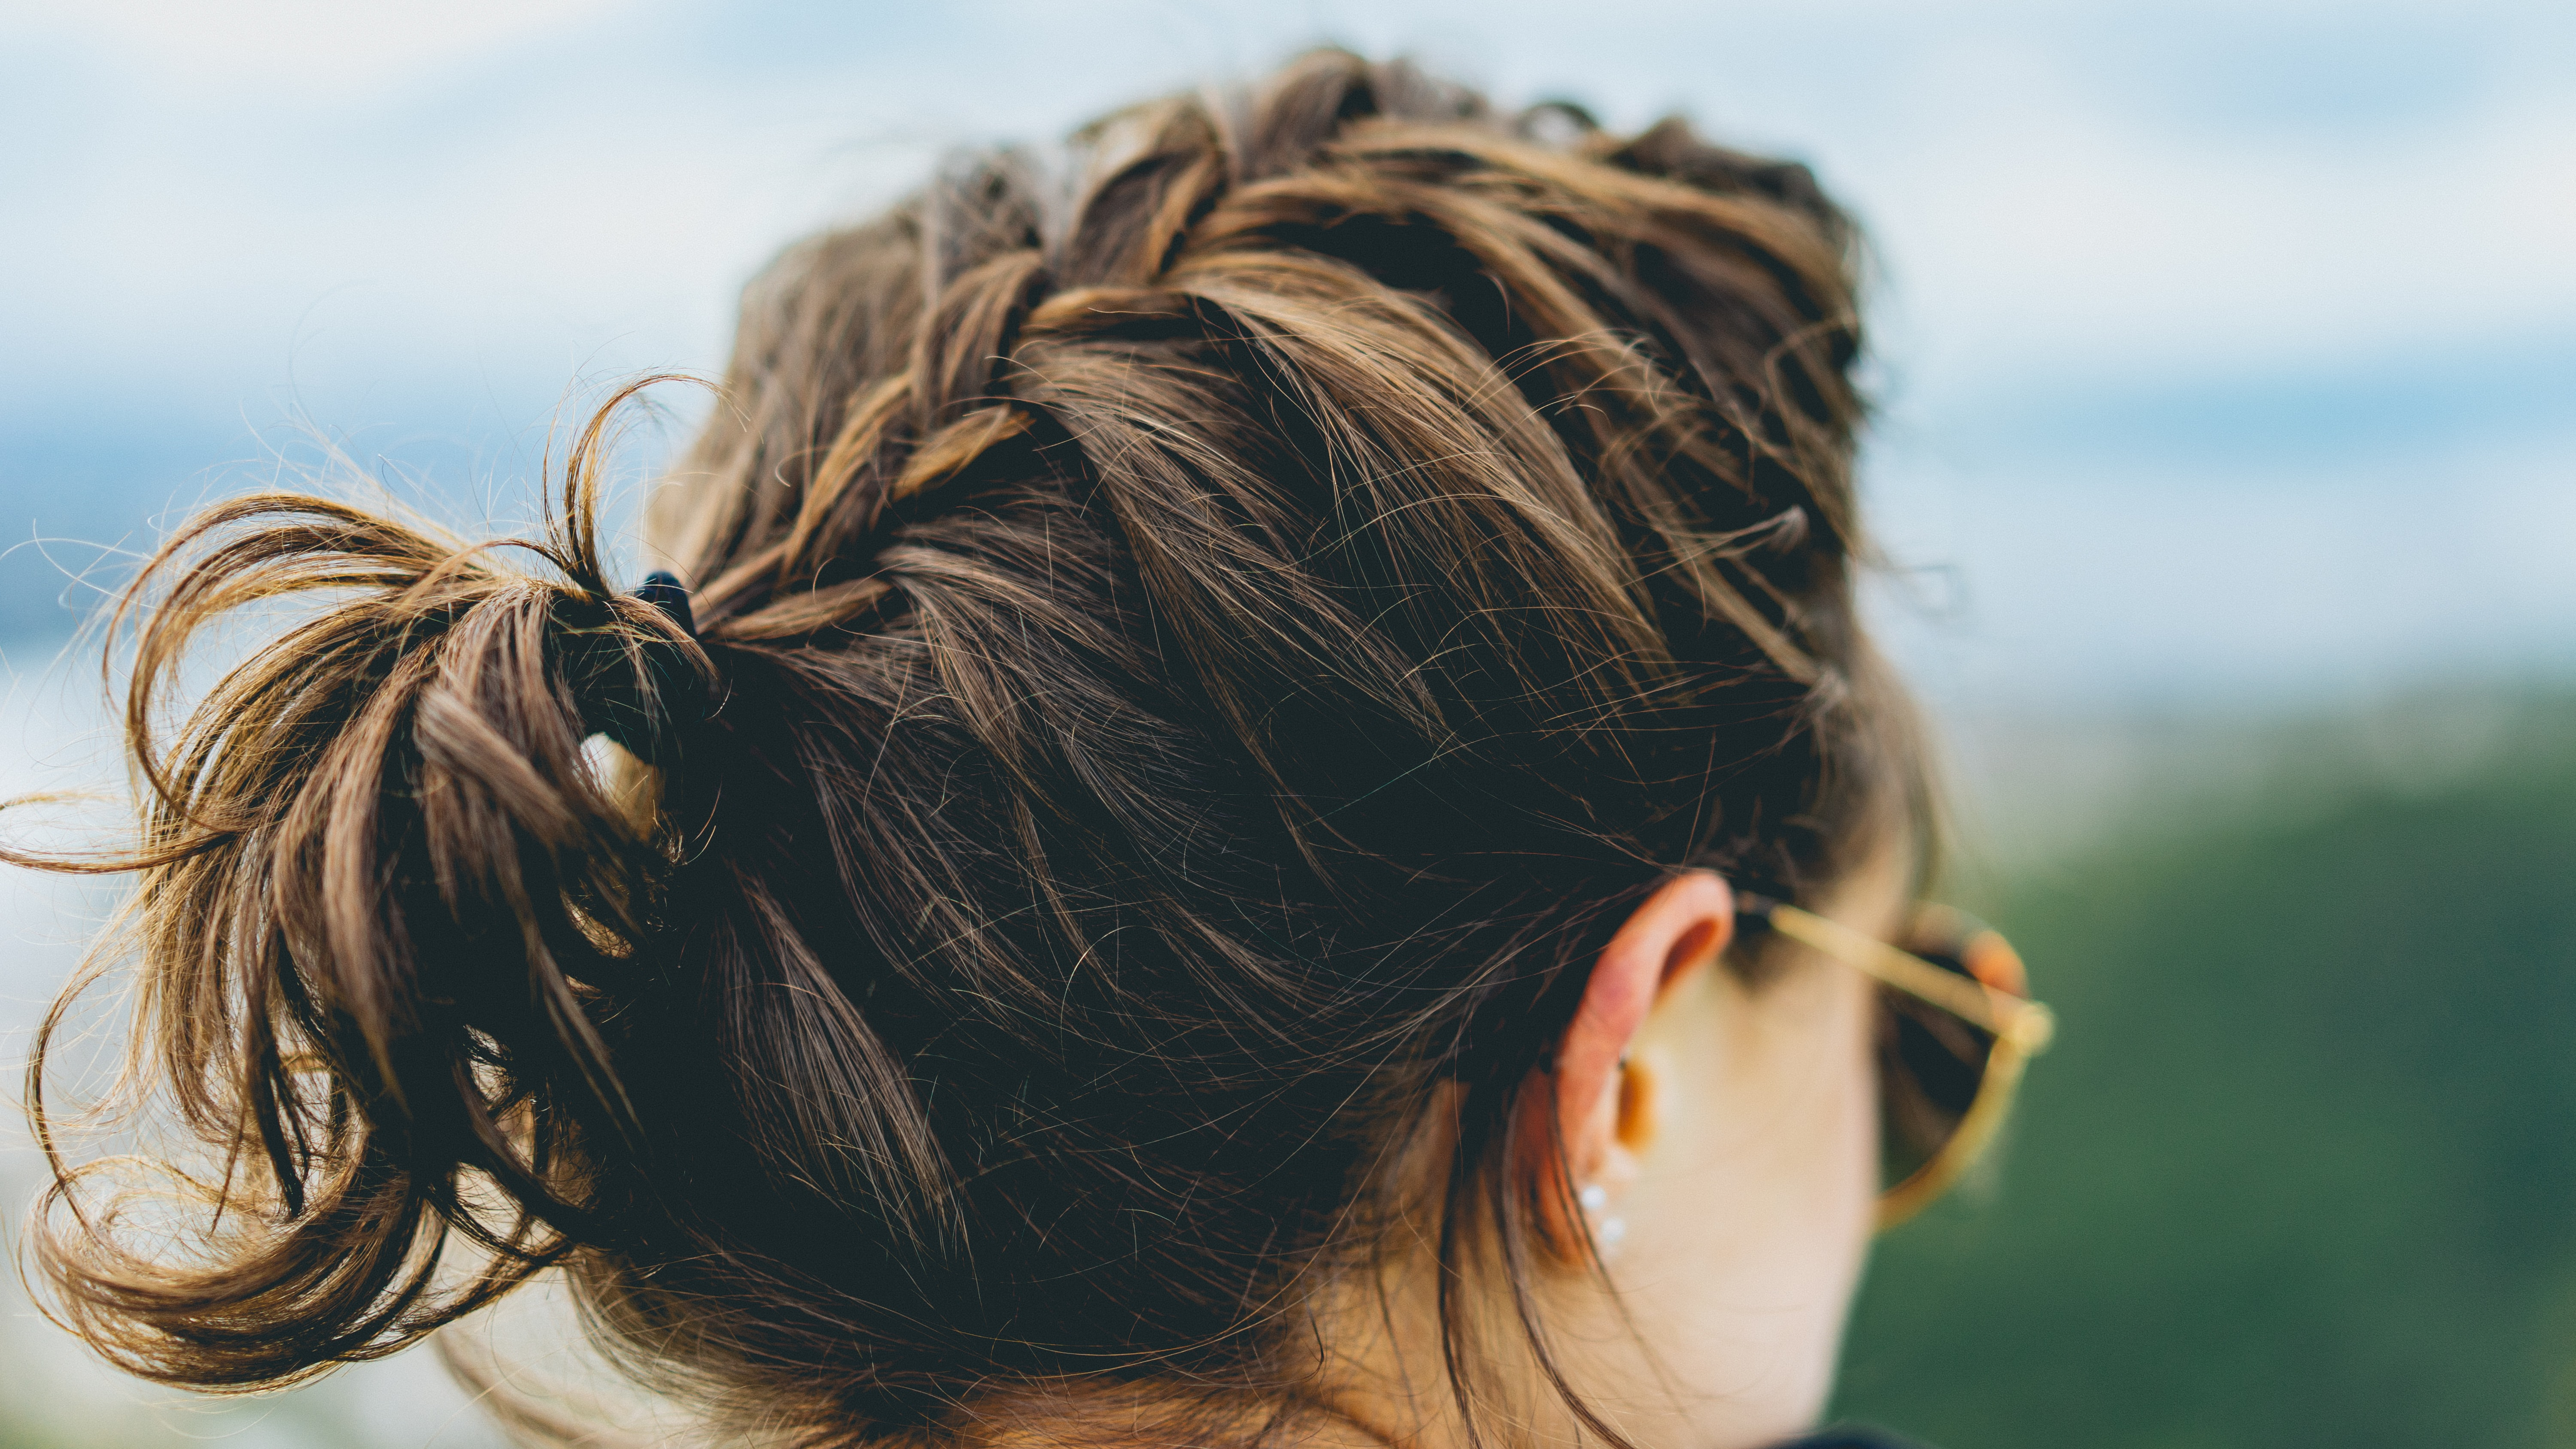 A woman with a braid in sunglasses faces away from the camera against a blue sky